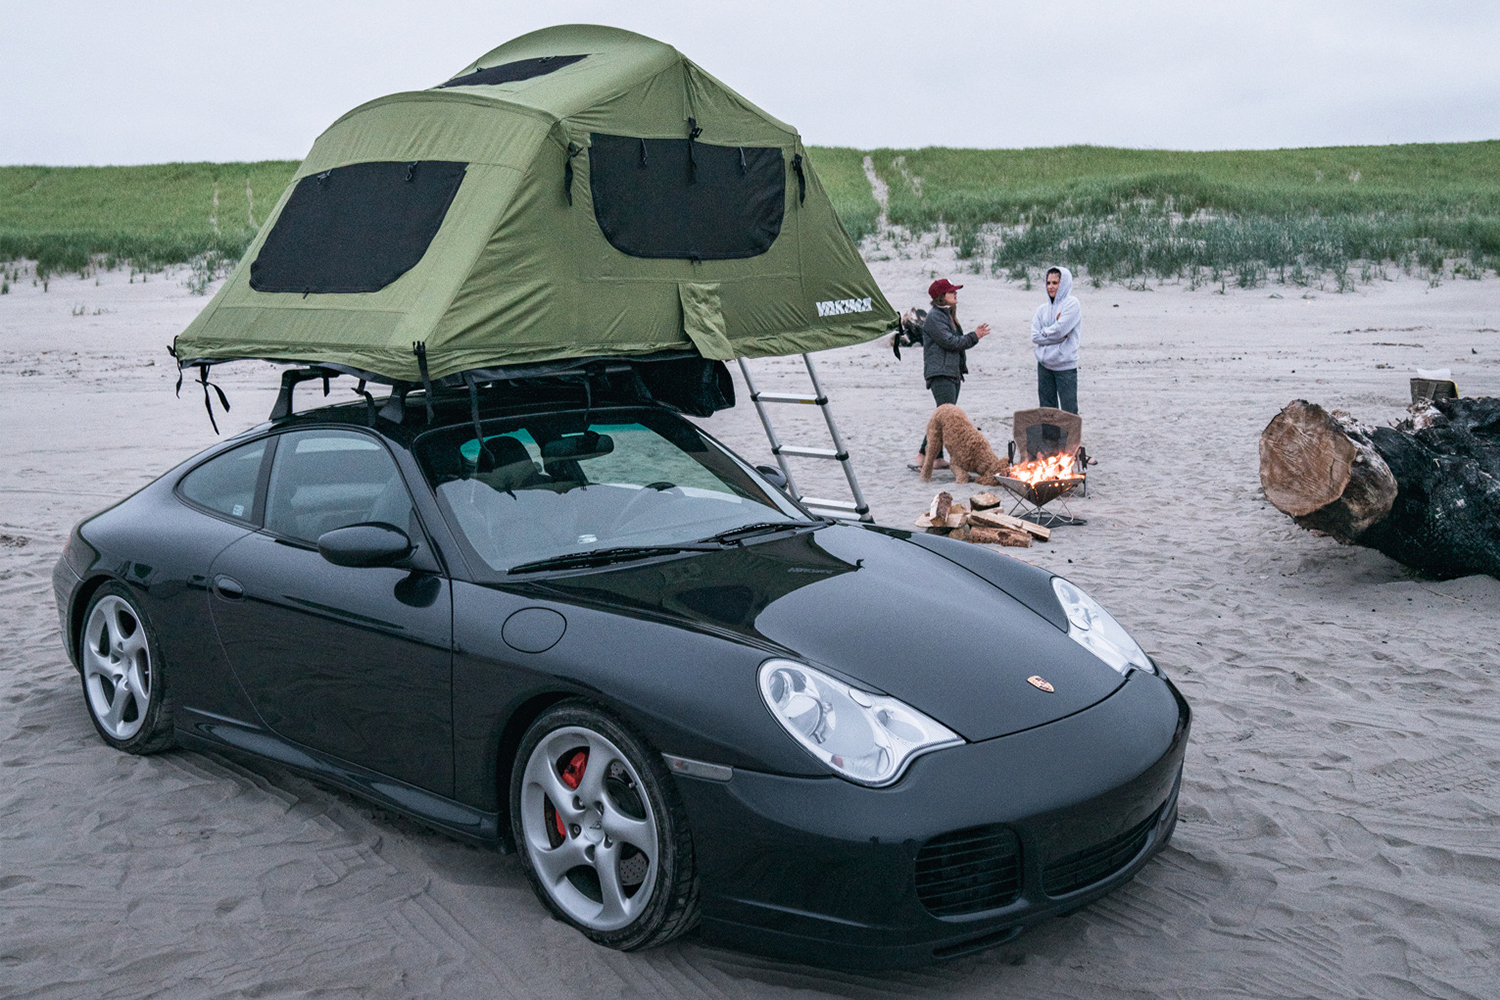 How To Car Camp In A Porsche According To A Guy Who Does Insidehook